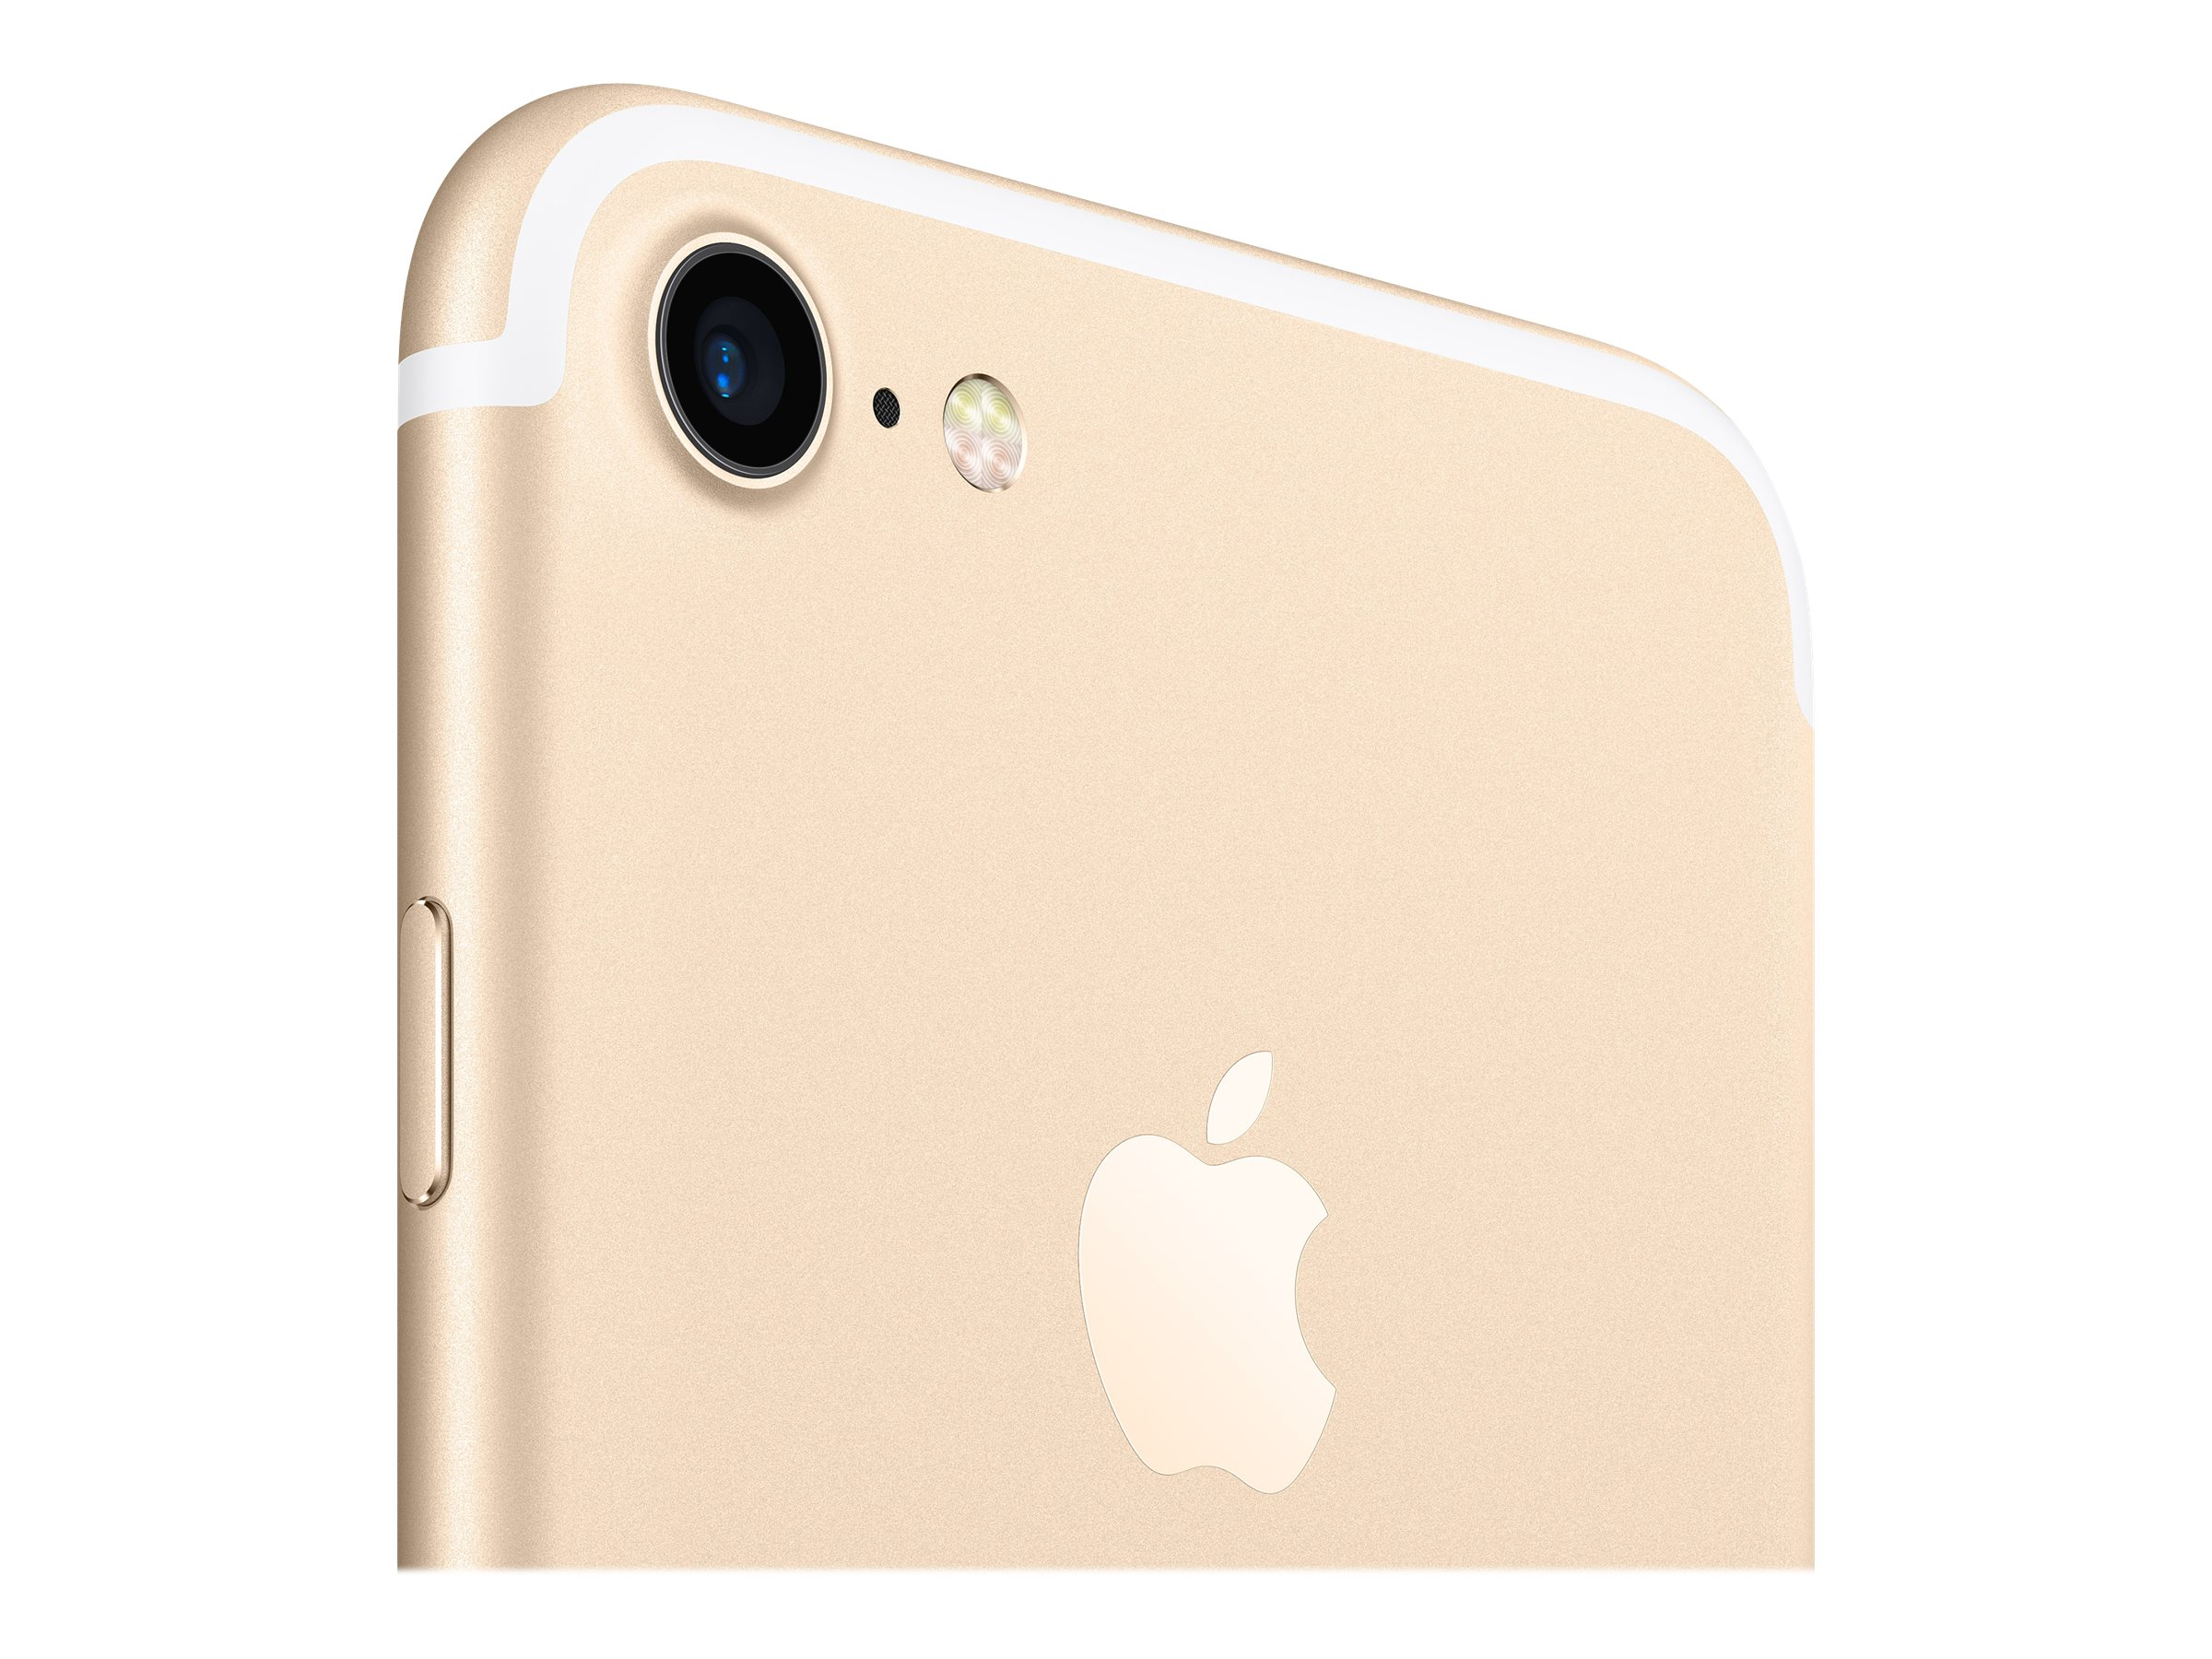 "Apple iPhone 7 - Smartphone - 4G LTE Advanced - 128 Go - GSM - 4.7"" - 1334 x 750 pixels (326 ppi) - Retina HD - 12 MP (caméra avant 7 MP) - or"